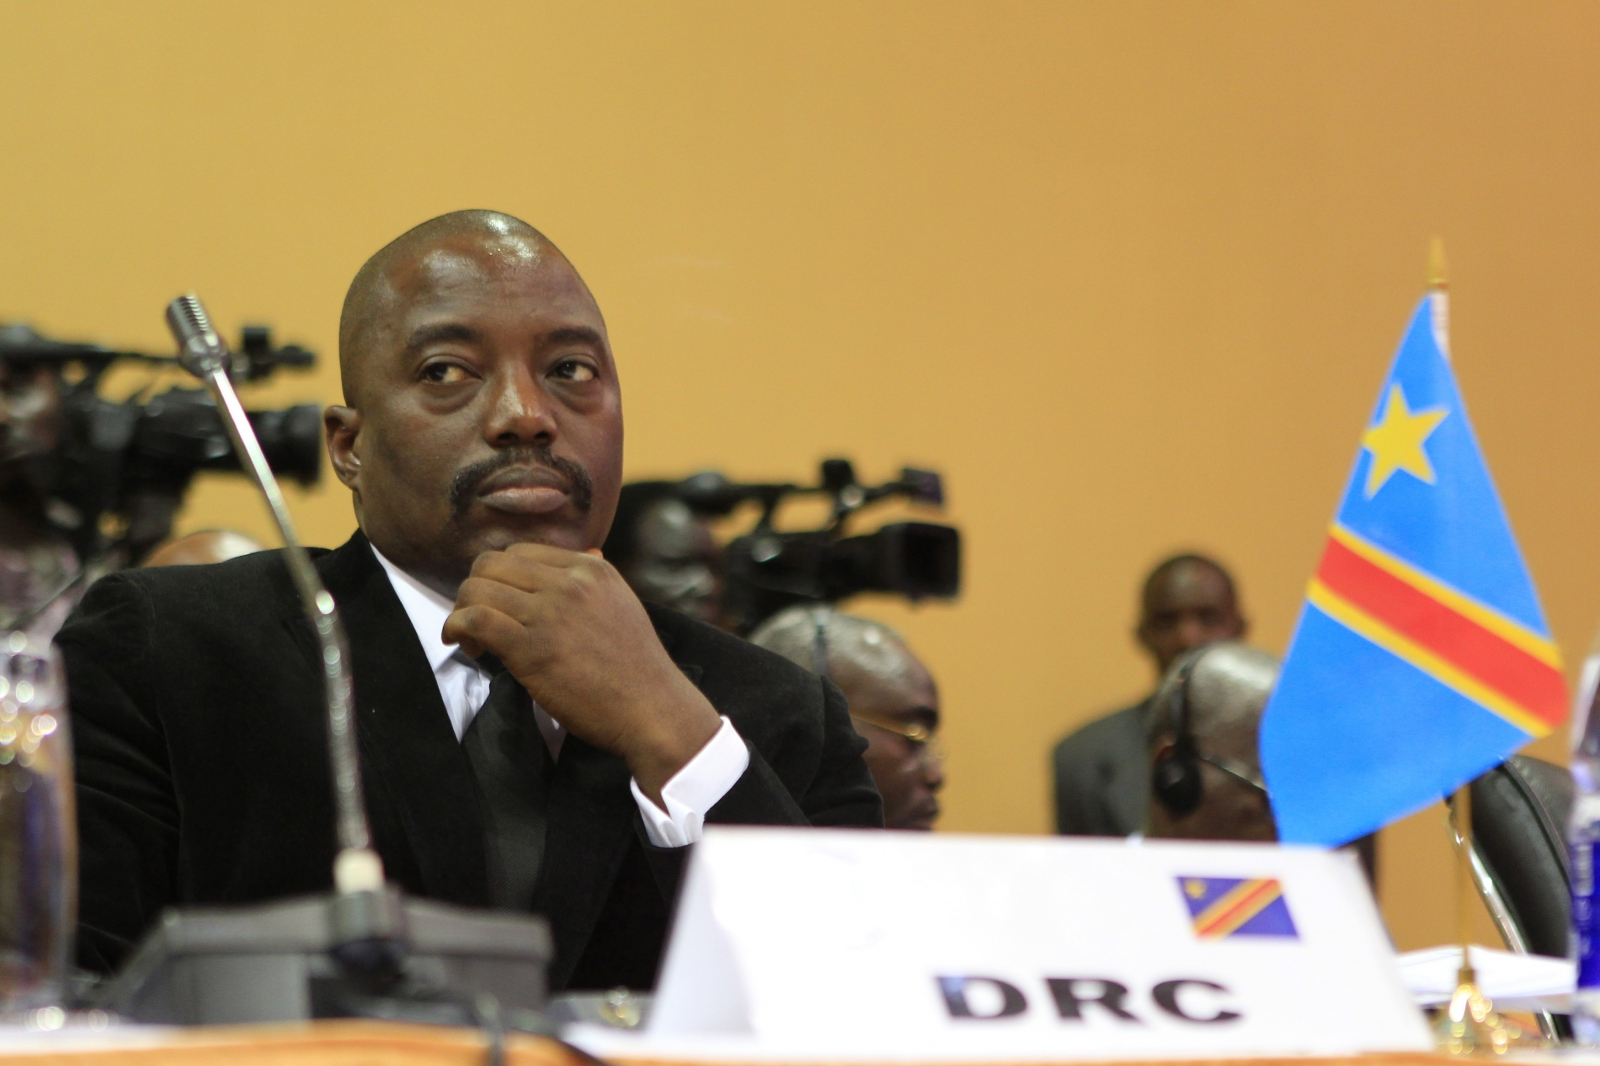 DRC: President Joseph Kabila 'has not respected accord' with new government